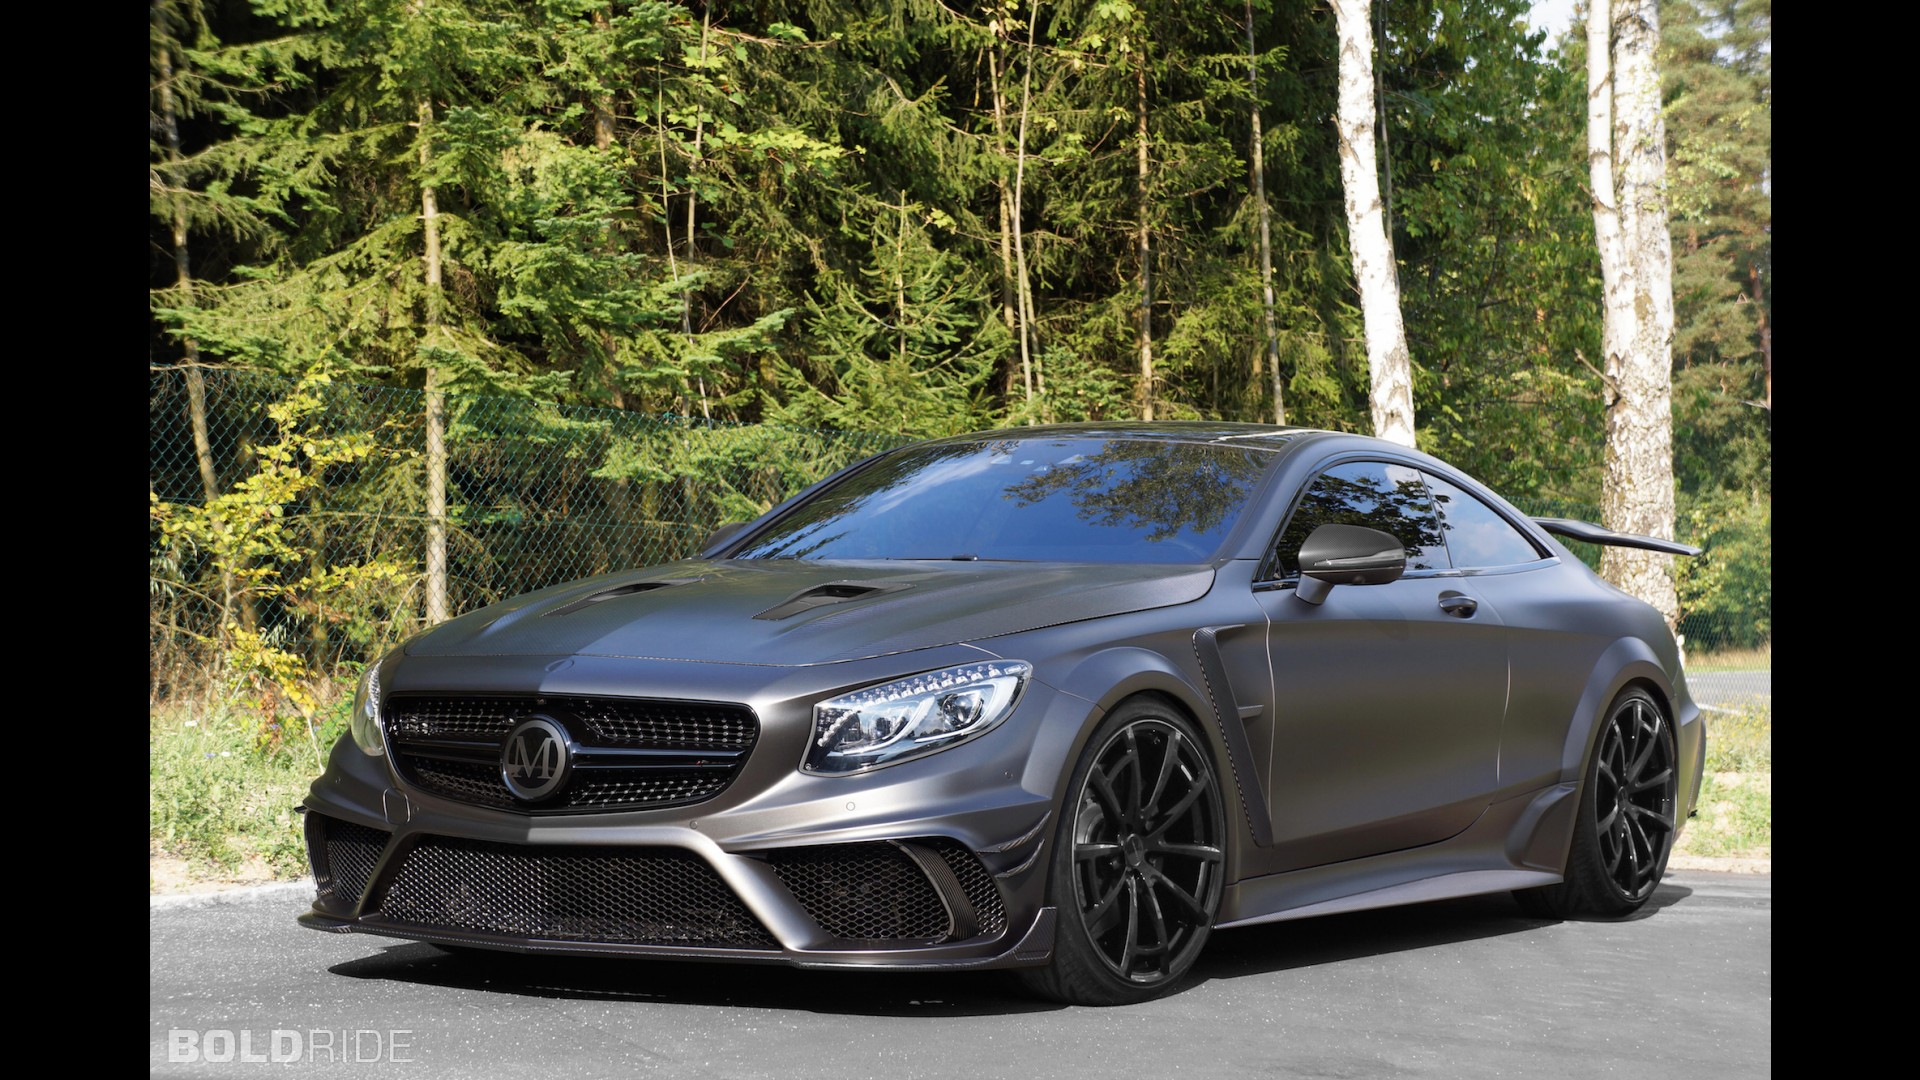 2015 s63 amg coupe 0 60 images for Mercedes benz 0 60